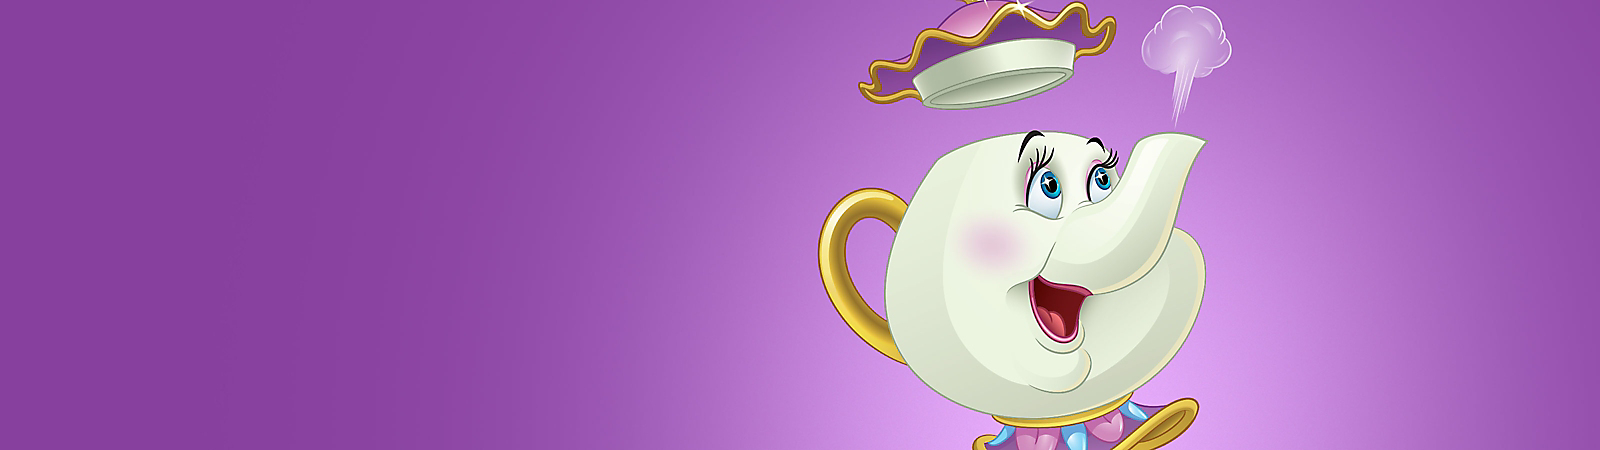 Background image of Mrs. Potts